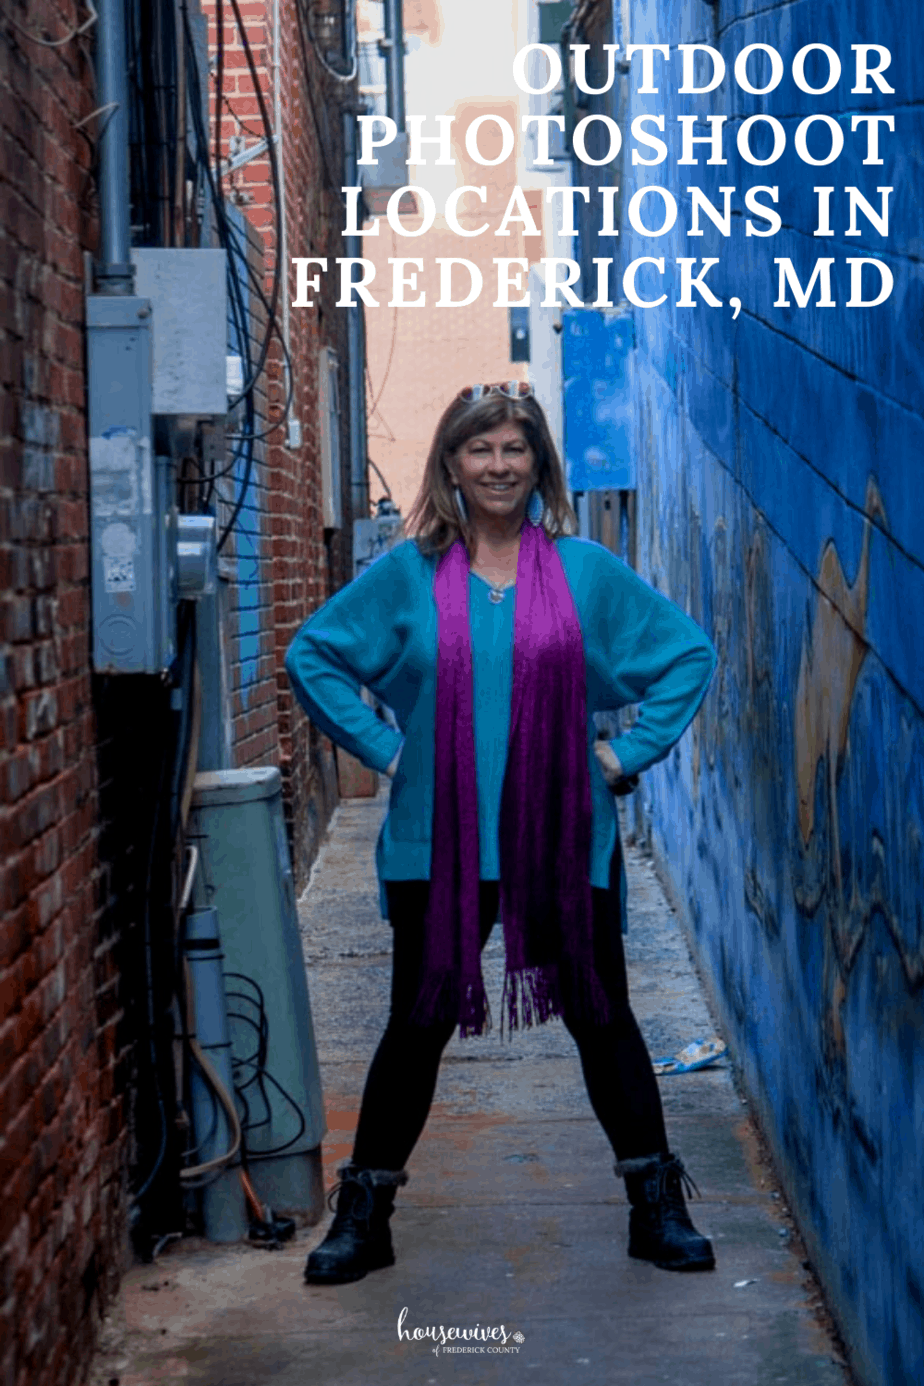 Outdoor Photoshoot Locations in Frederick Md